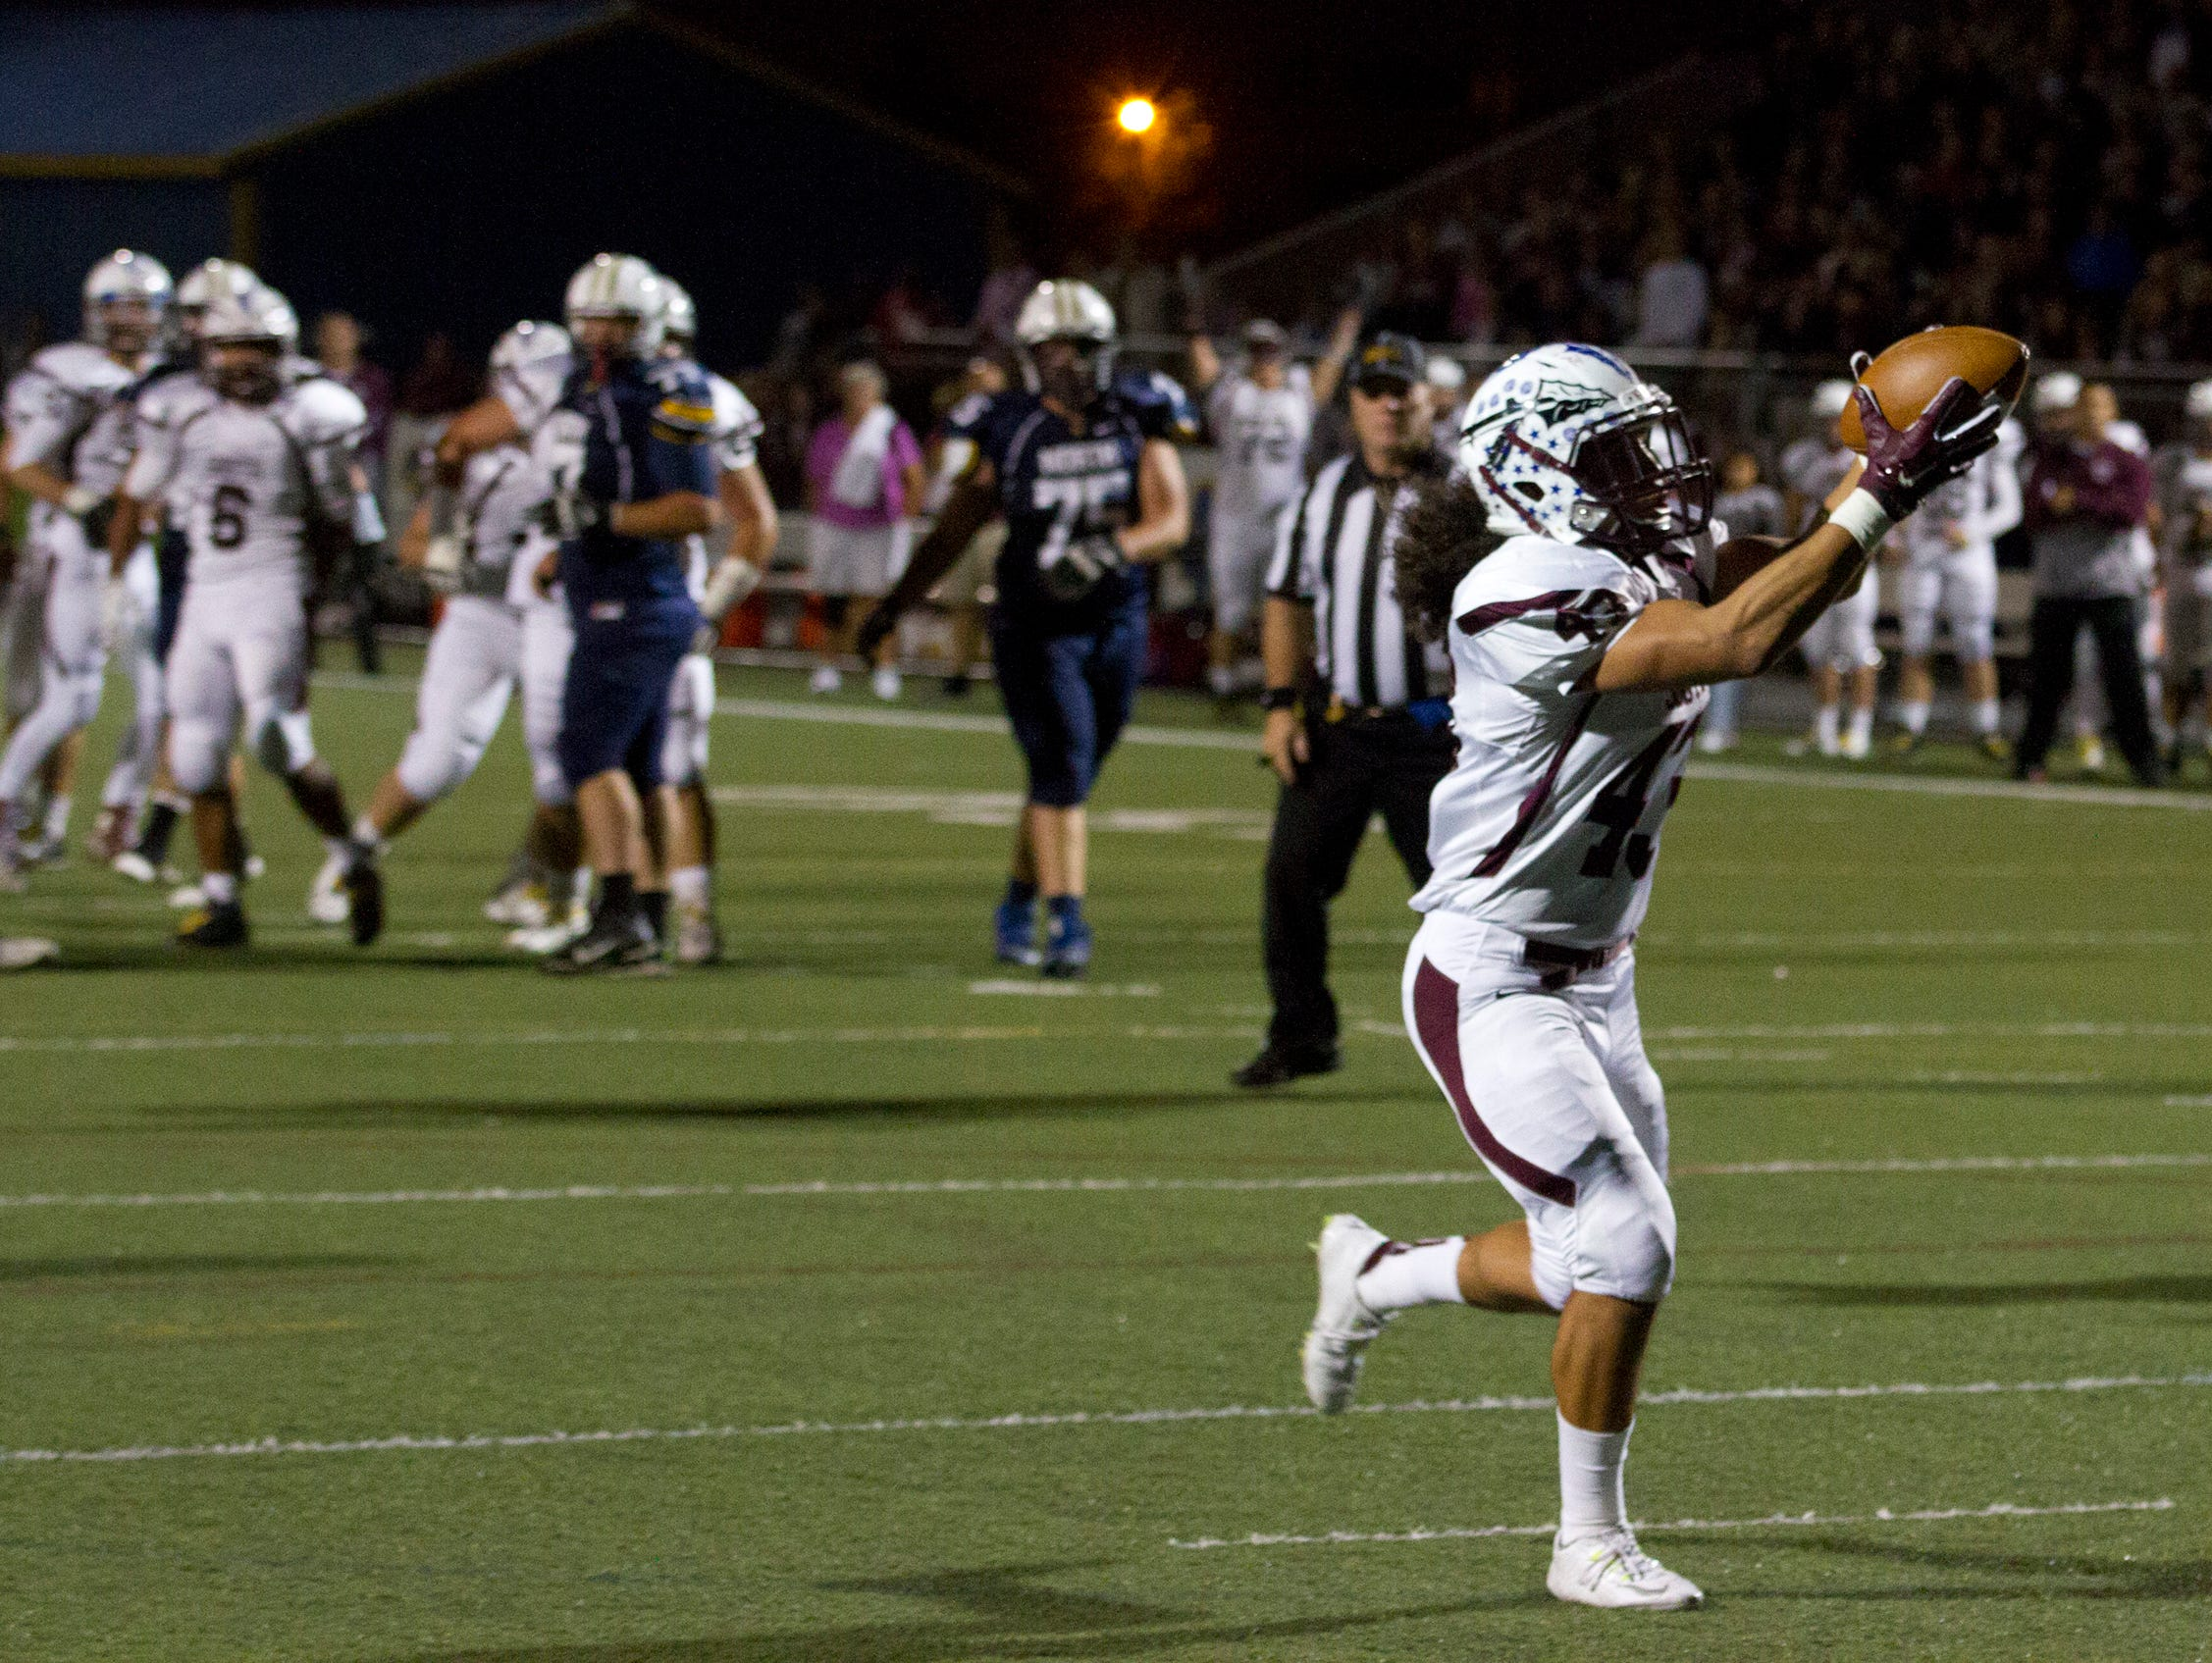 Toms River South's Tyler Sosa catches a pass over the middle and takes it in for his teams first touchdown. Toms River South vs Toms River North Football in Toms River NJ on September 25, 2015.